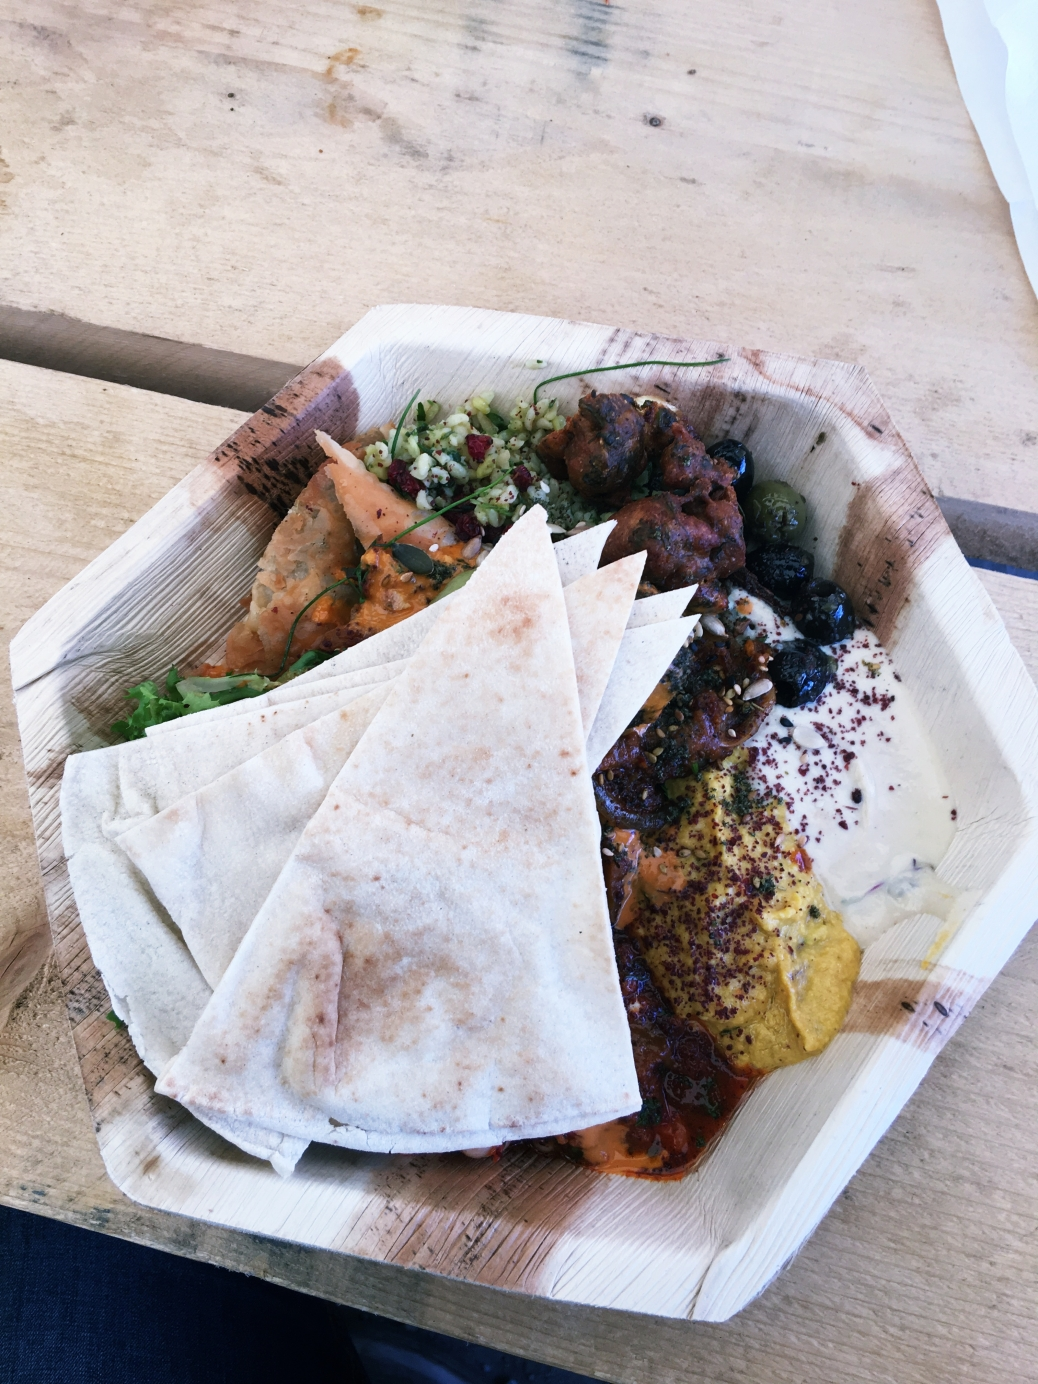 Best vegan food in manchester england vegantravel in may i flew from toulouse to manchester to be an au pair for the summer its here in manchester that i decided to make the switch from being a forumfinder Choice Image